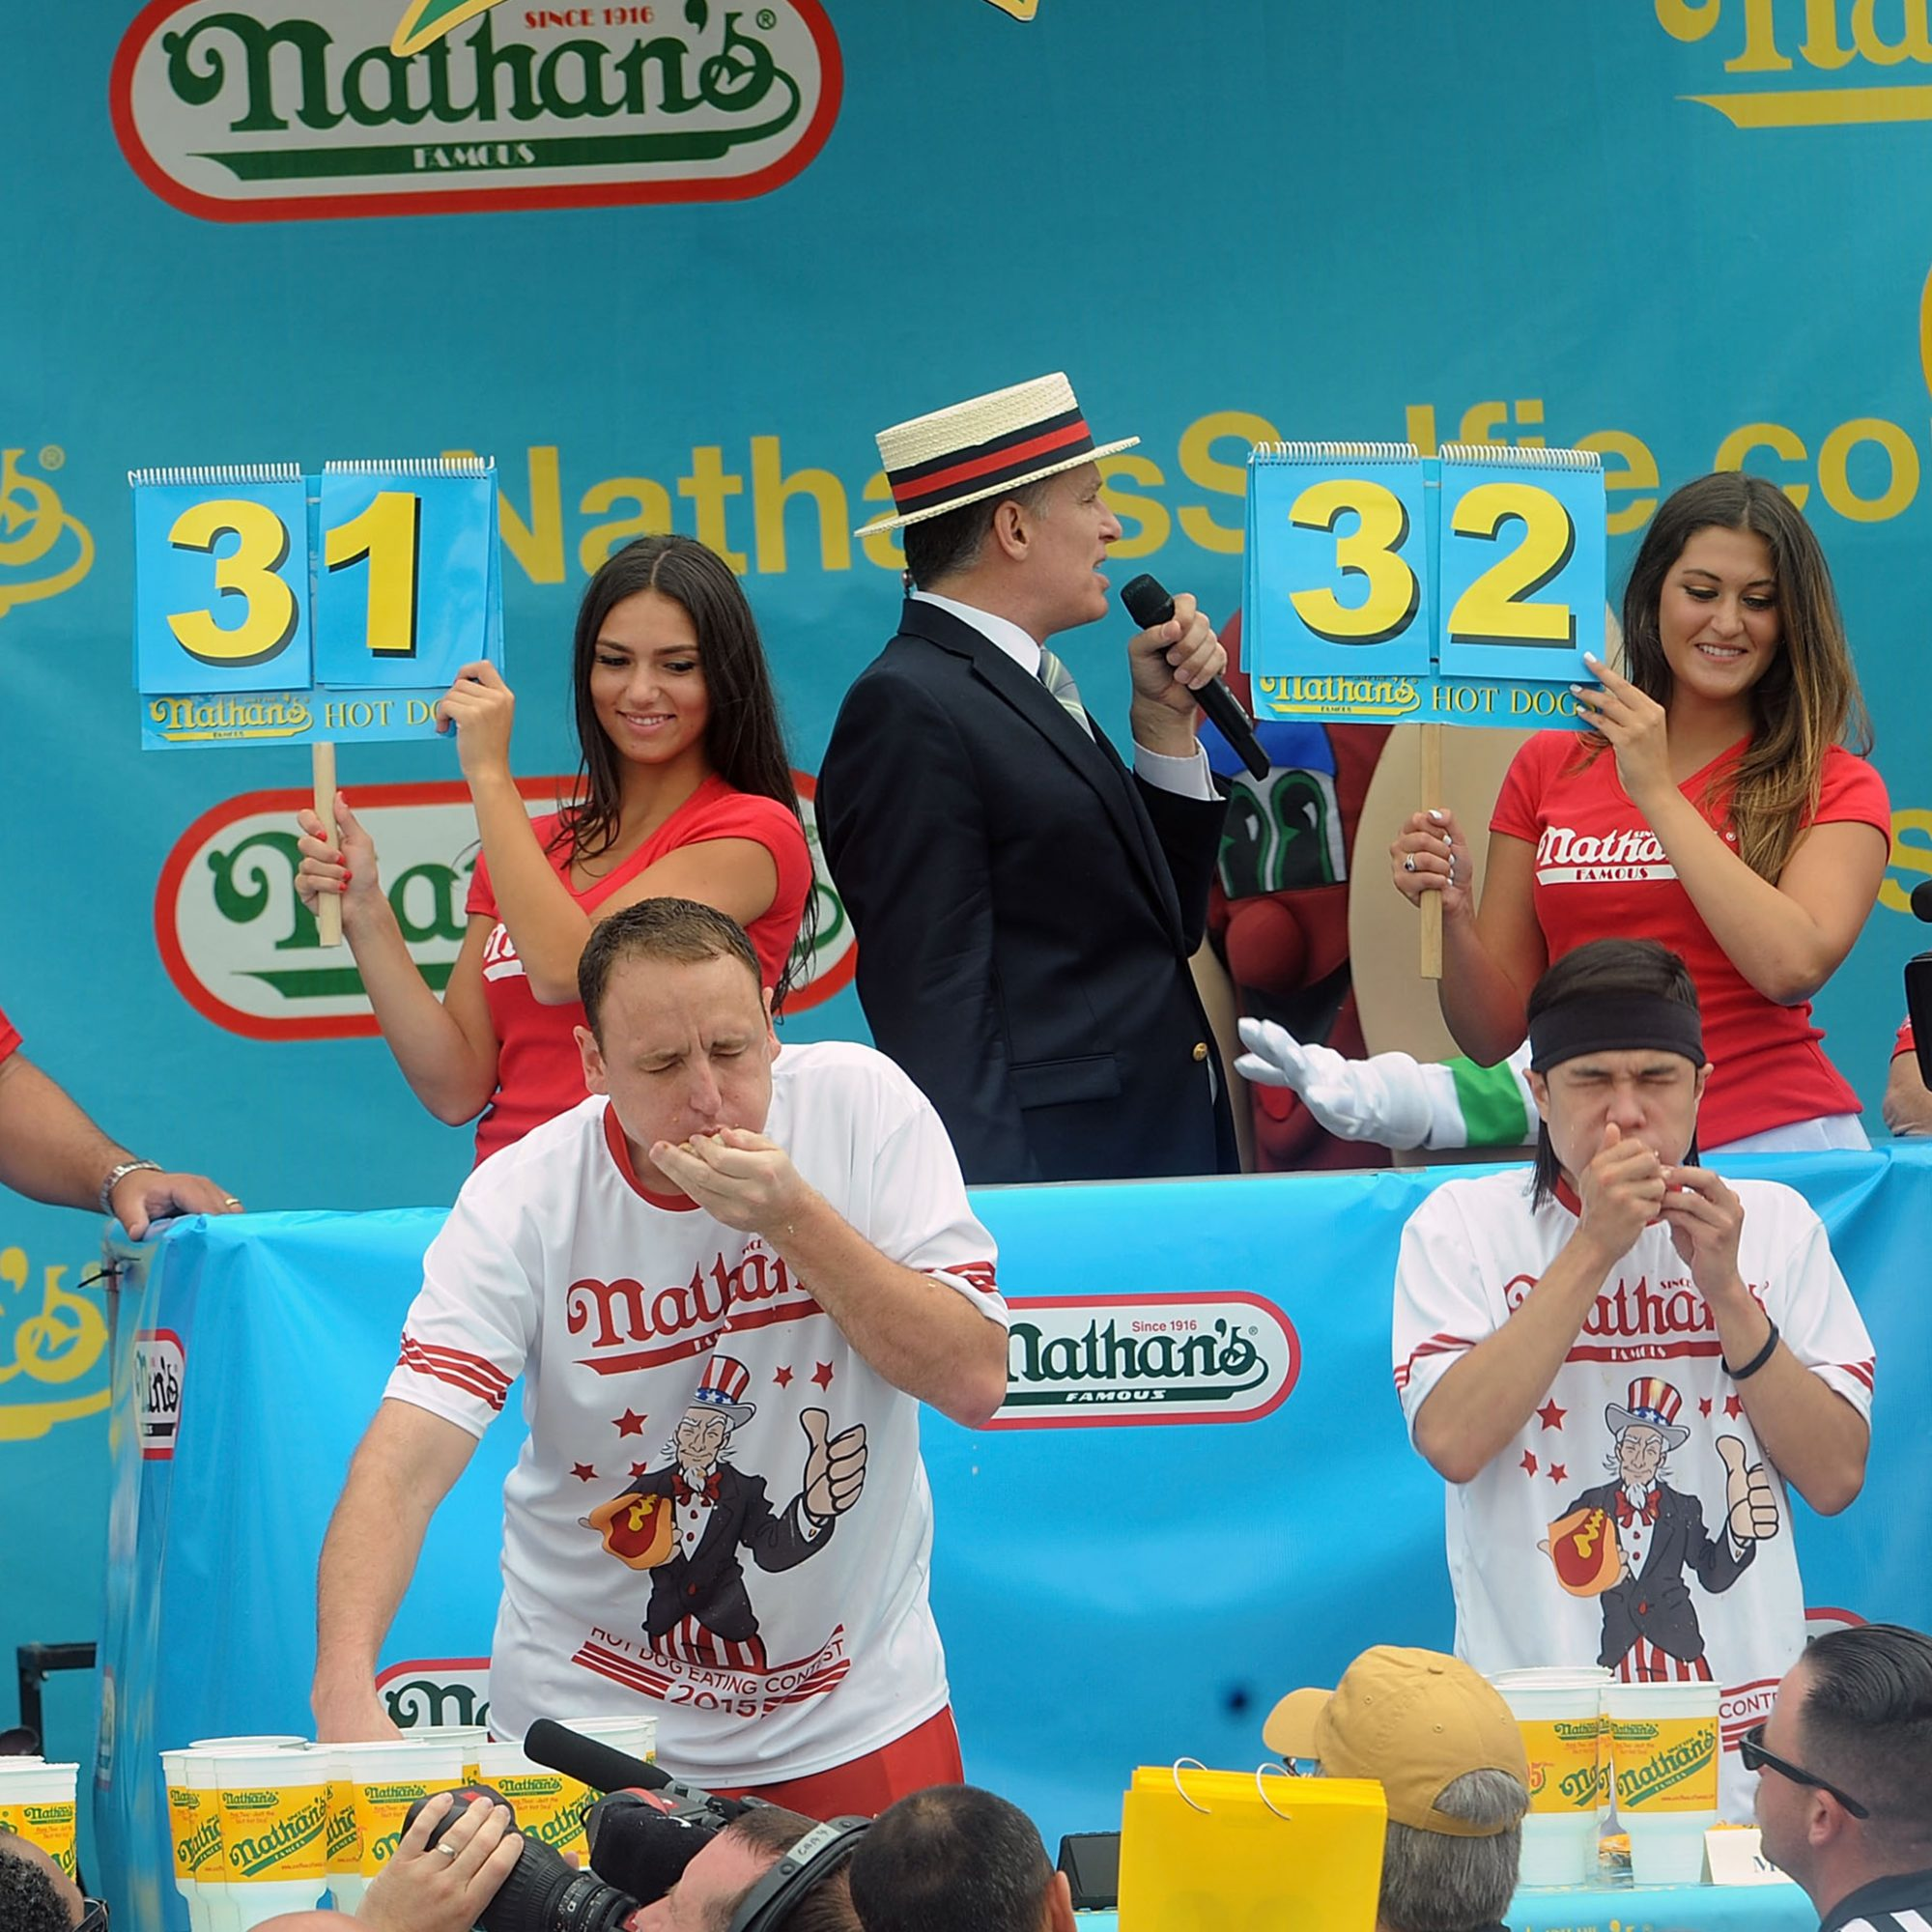 nathans-hot-dog-eating-contest-fwx-2